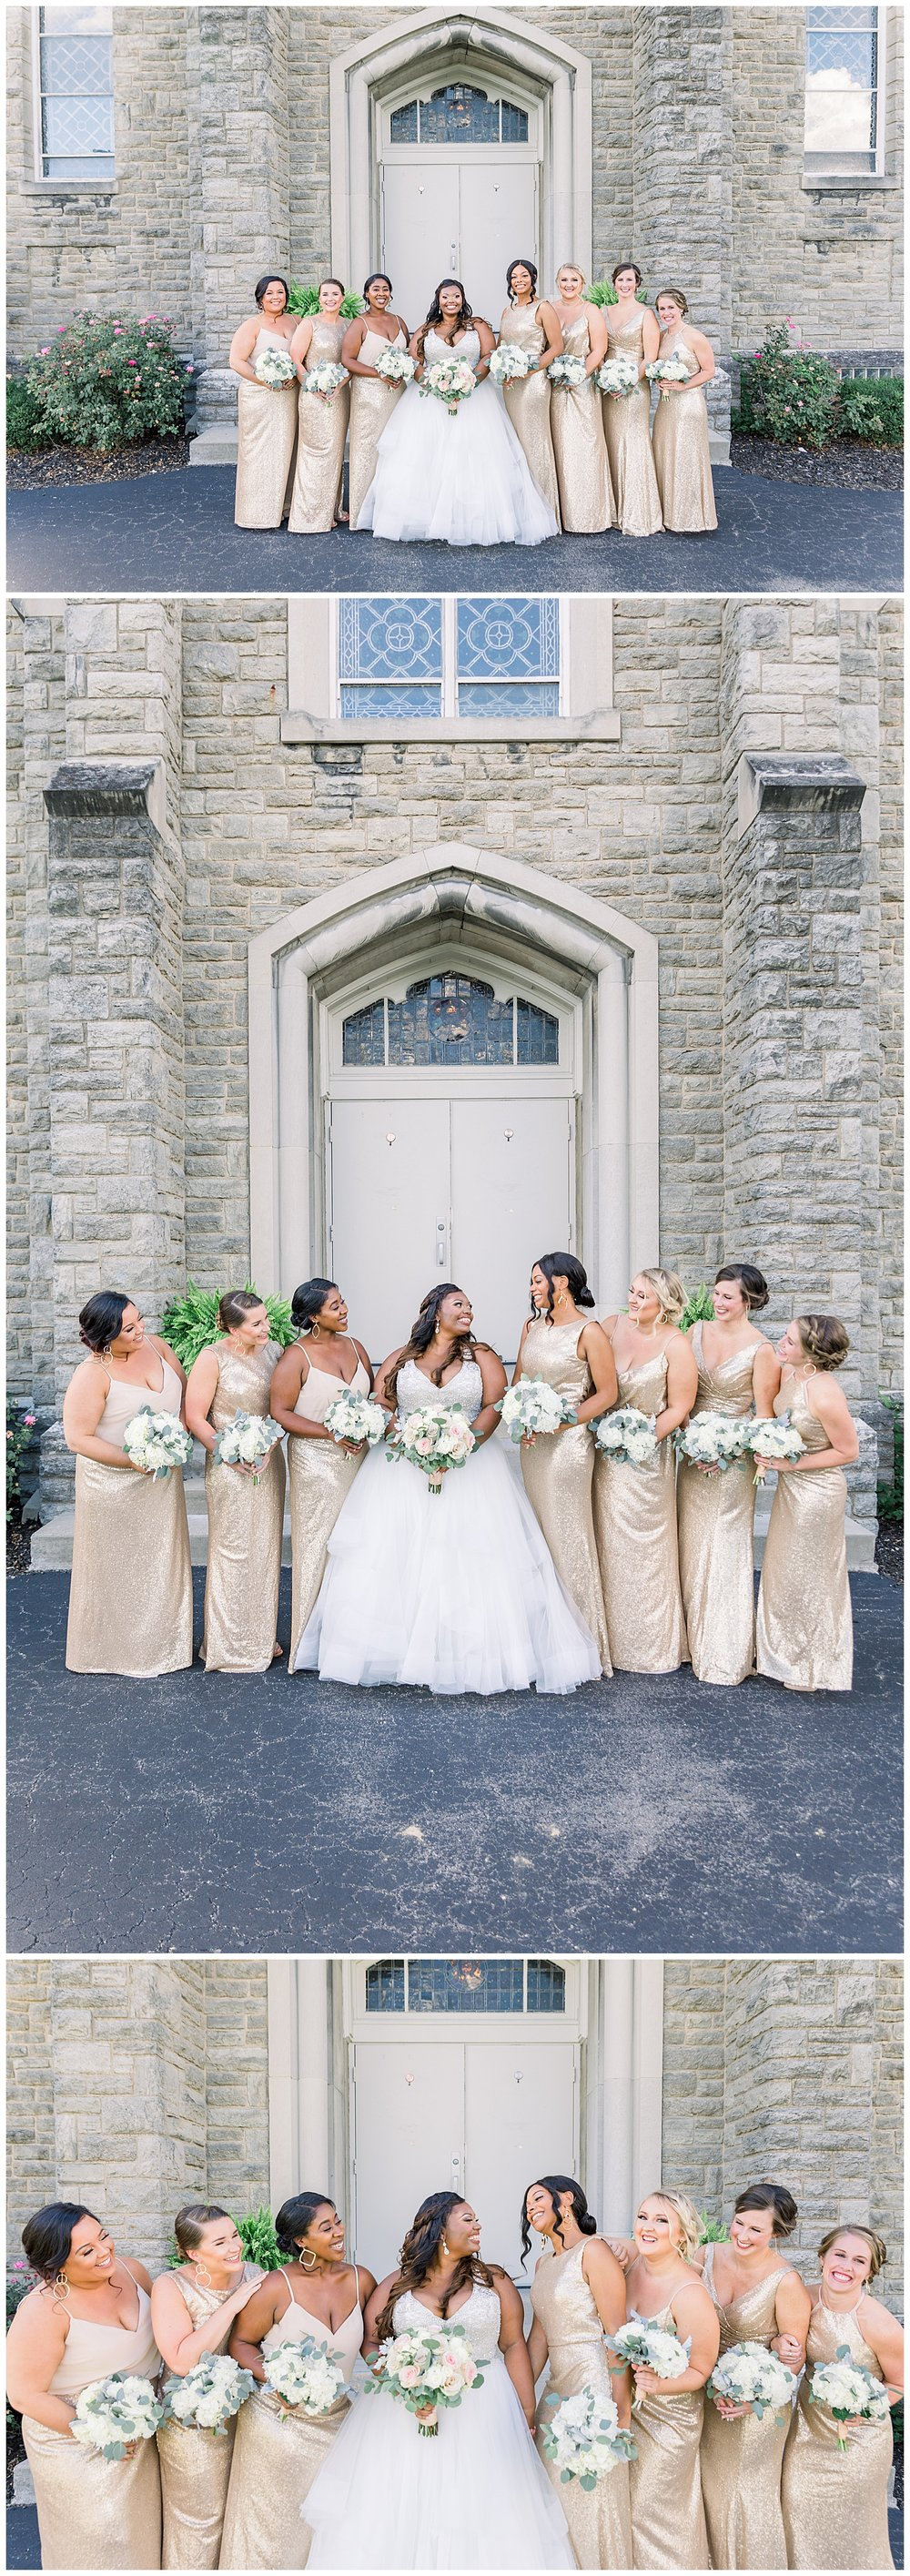 St. Aloysius Chapel the center downtown cincinnati wedding photographer ji cherir photography